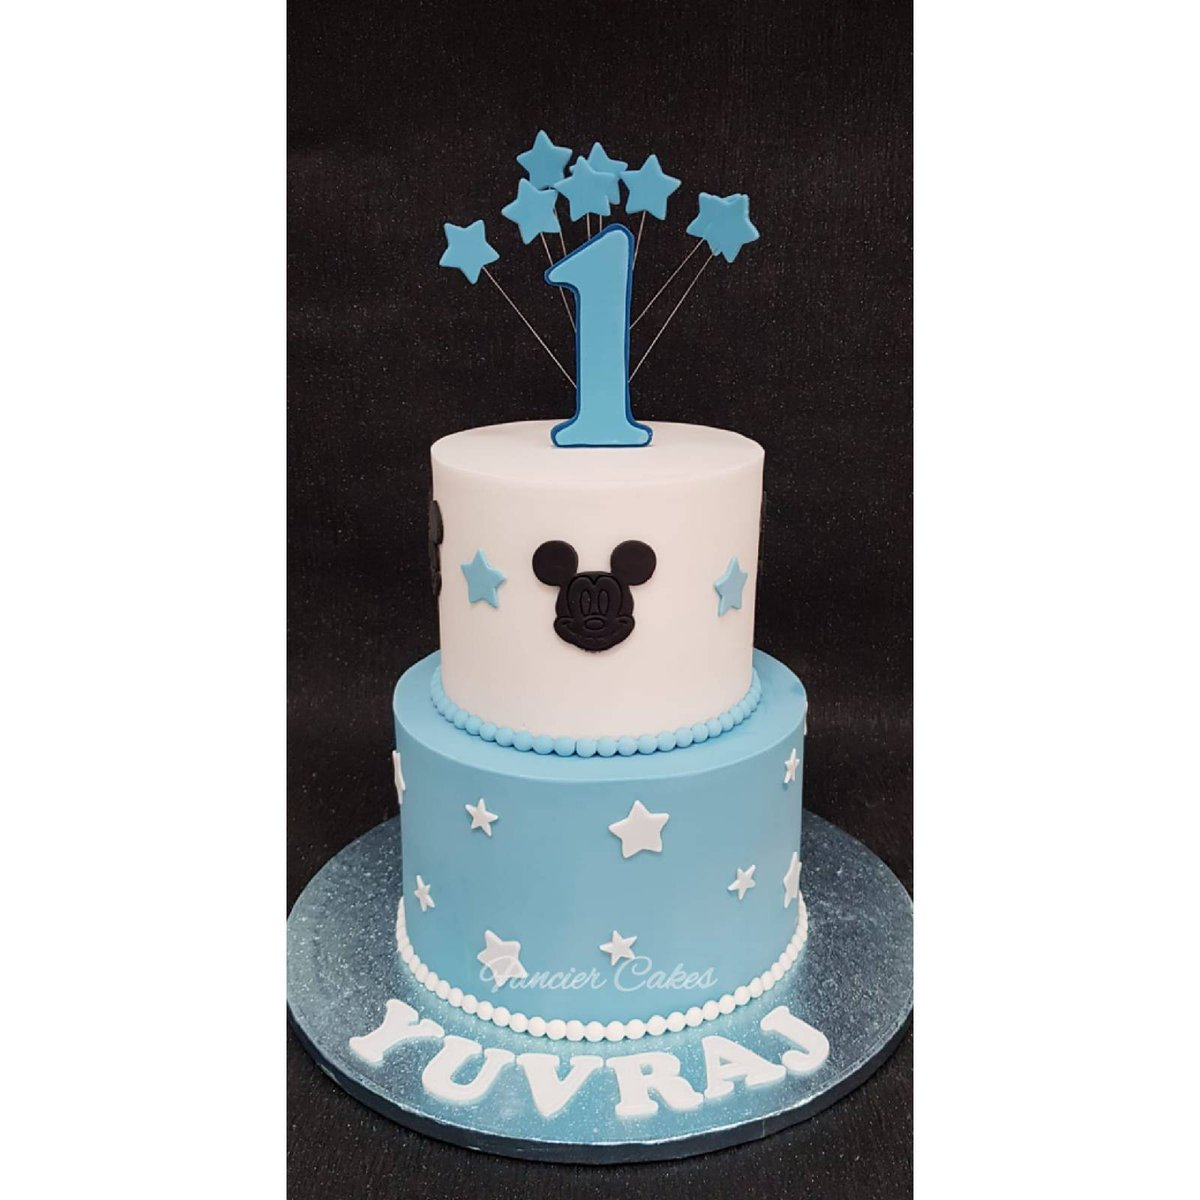 Magnificent Fancier Cakes On Twitter Eggless Mickey Mouse Cake For A First Funny Birthday Cards Online Fluifree Goldxyz